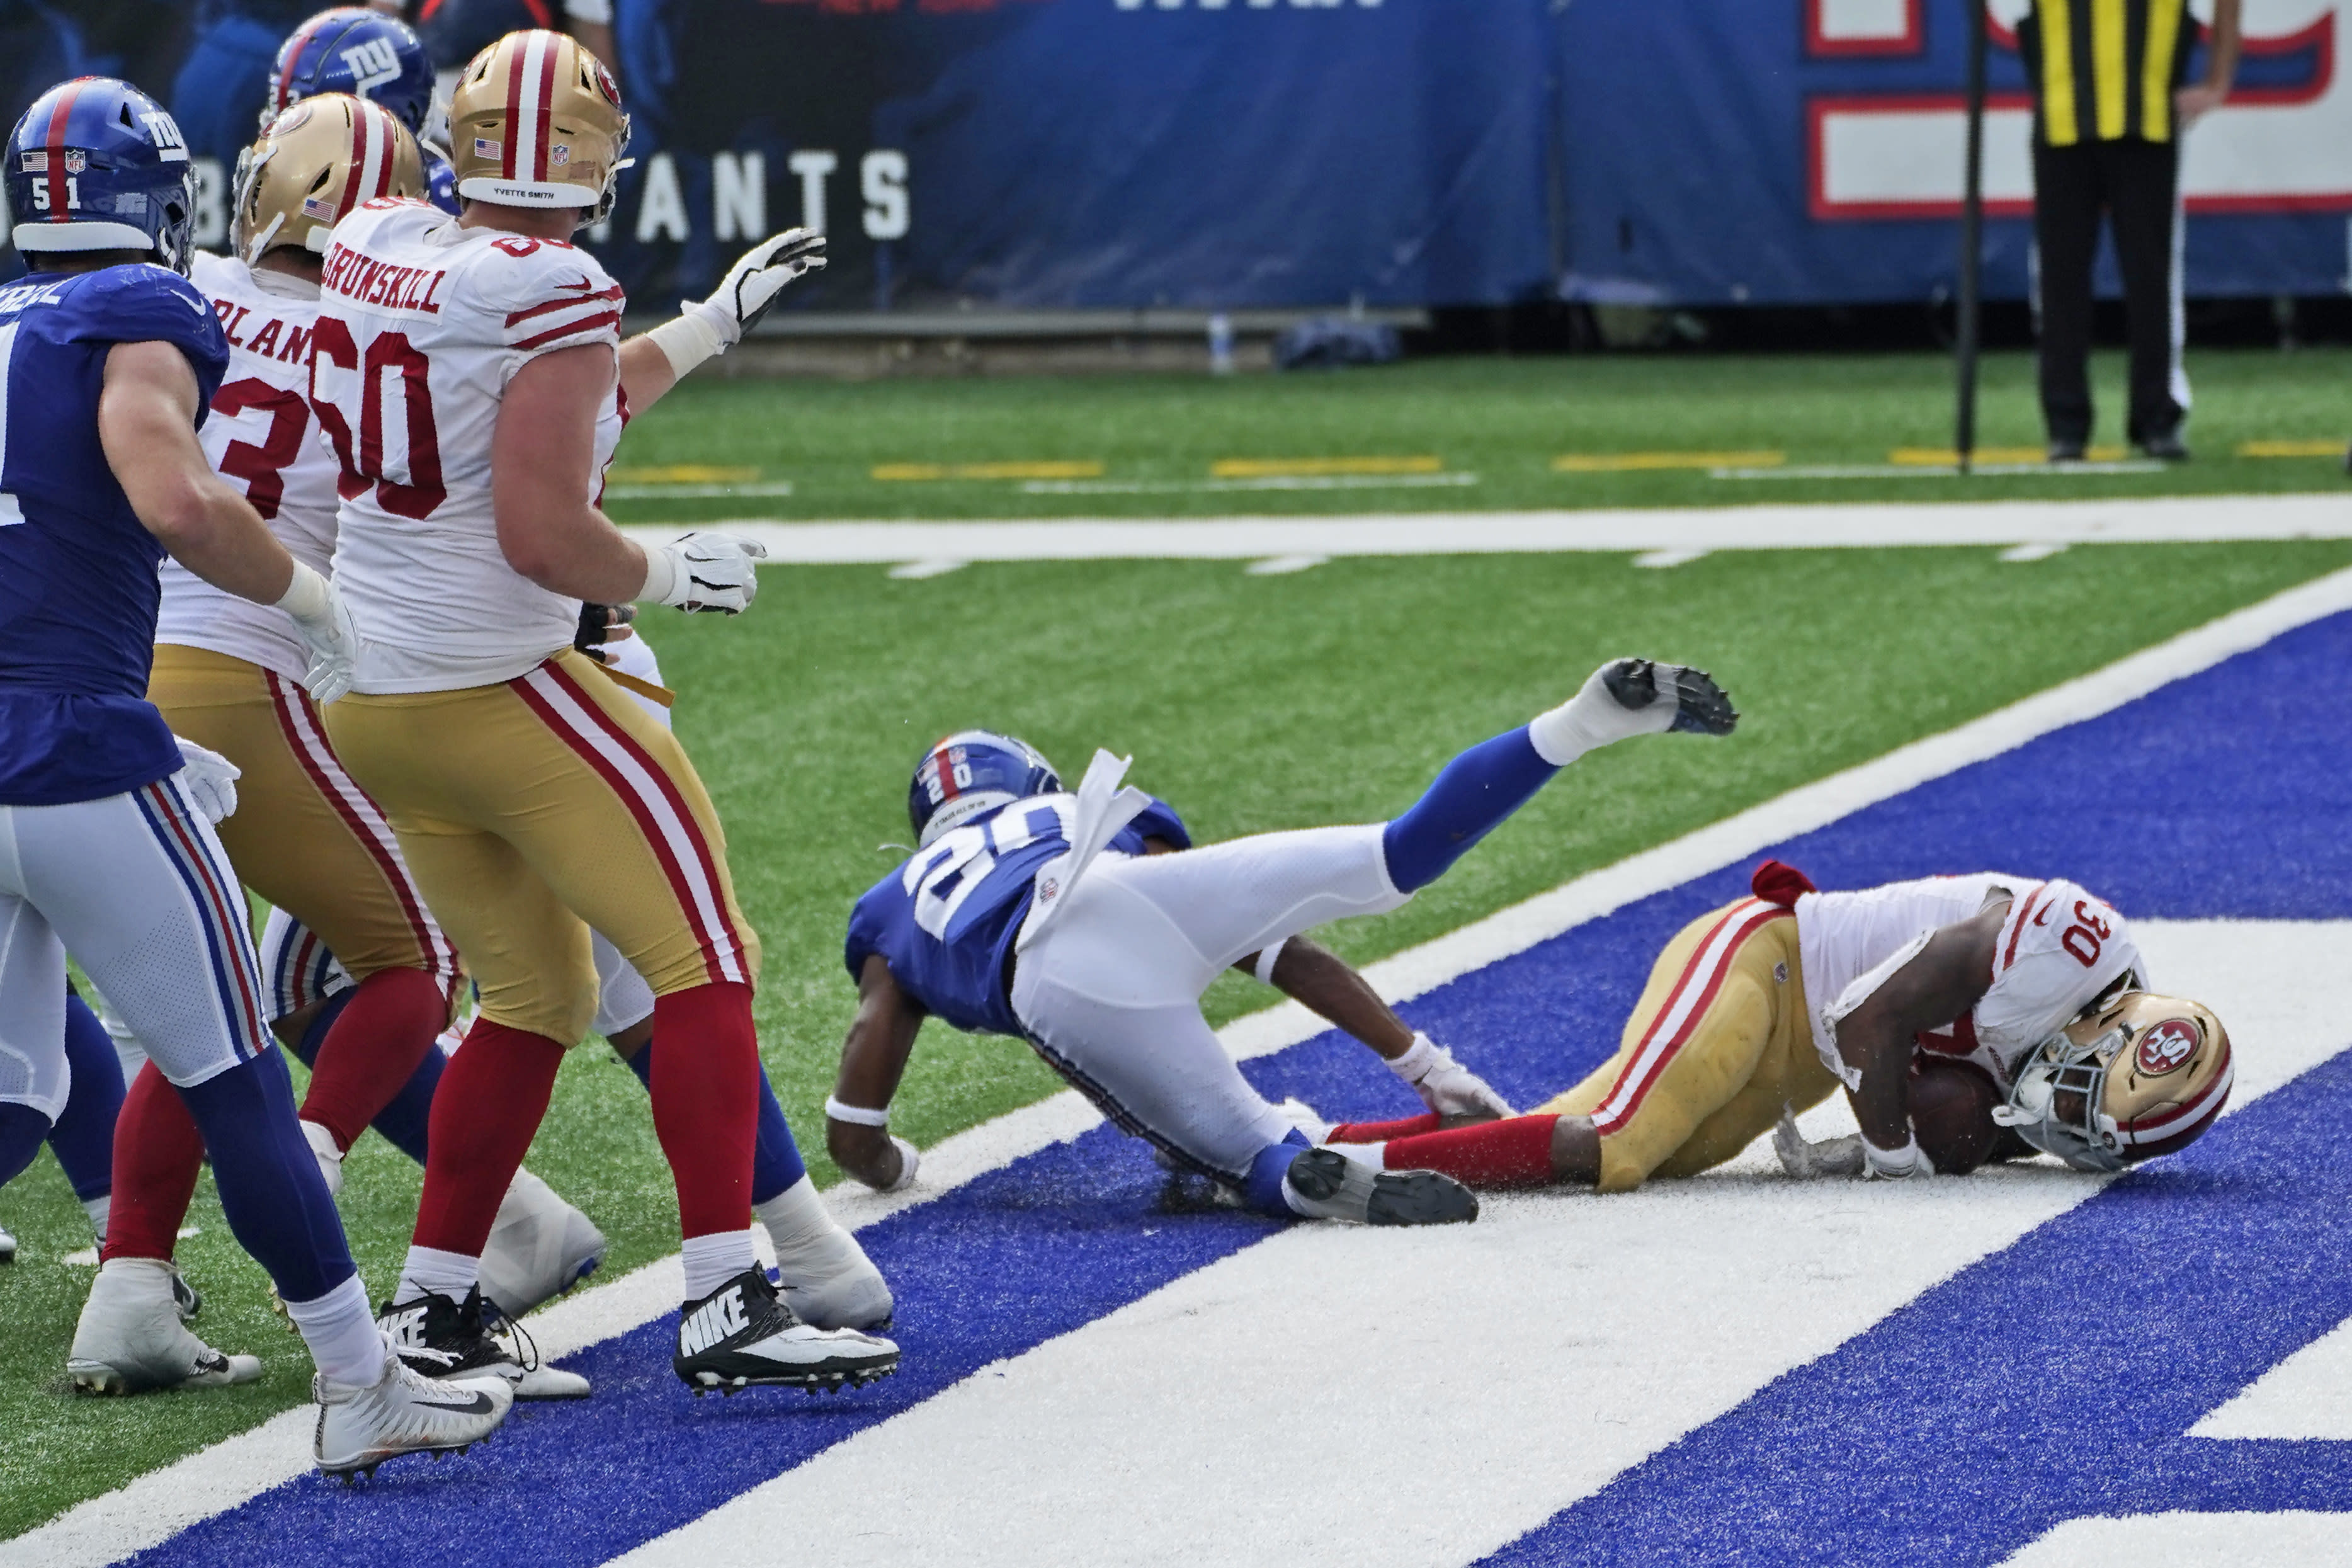 San Francisco 49ers' Jeff Wilson, right, scores a touchdown during the second half of an NFL football game against the New York Giants, Sunday, Sept. 27, 2020, in East Rutherford, N.J. (AP Photo/Corey Sipkin)